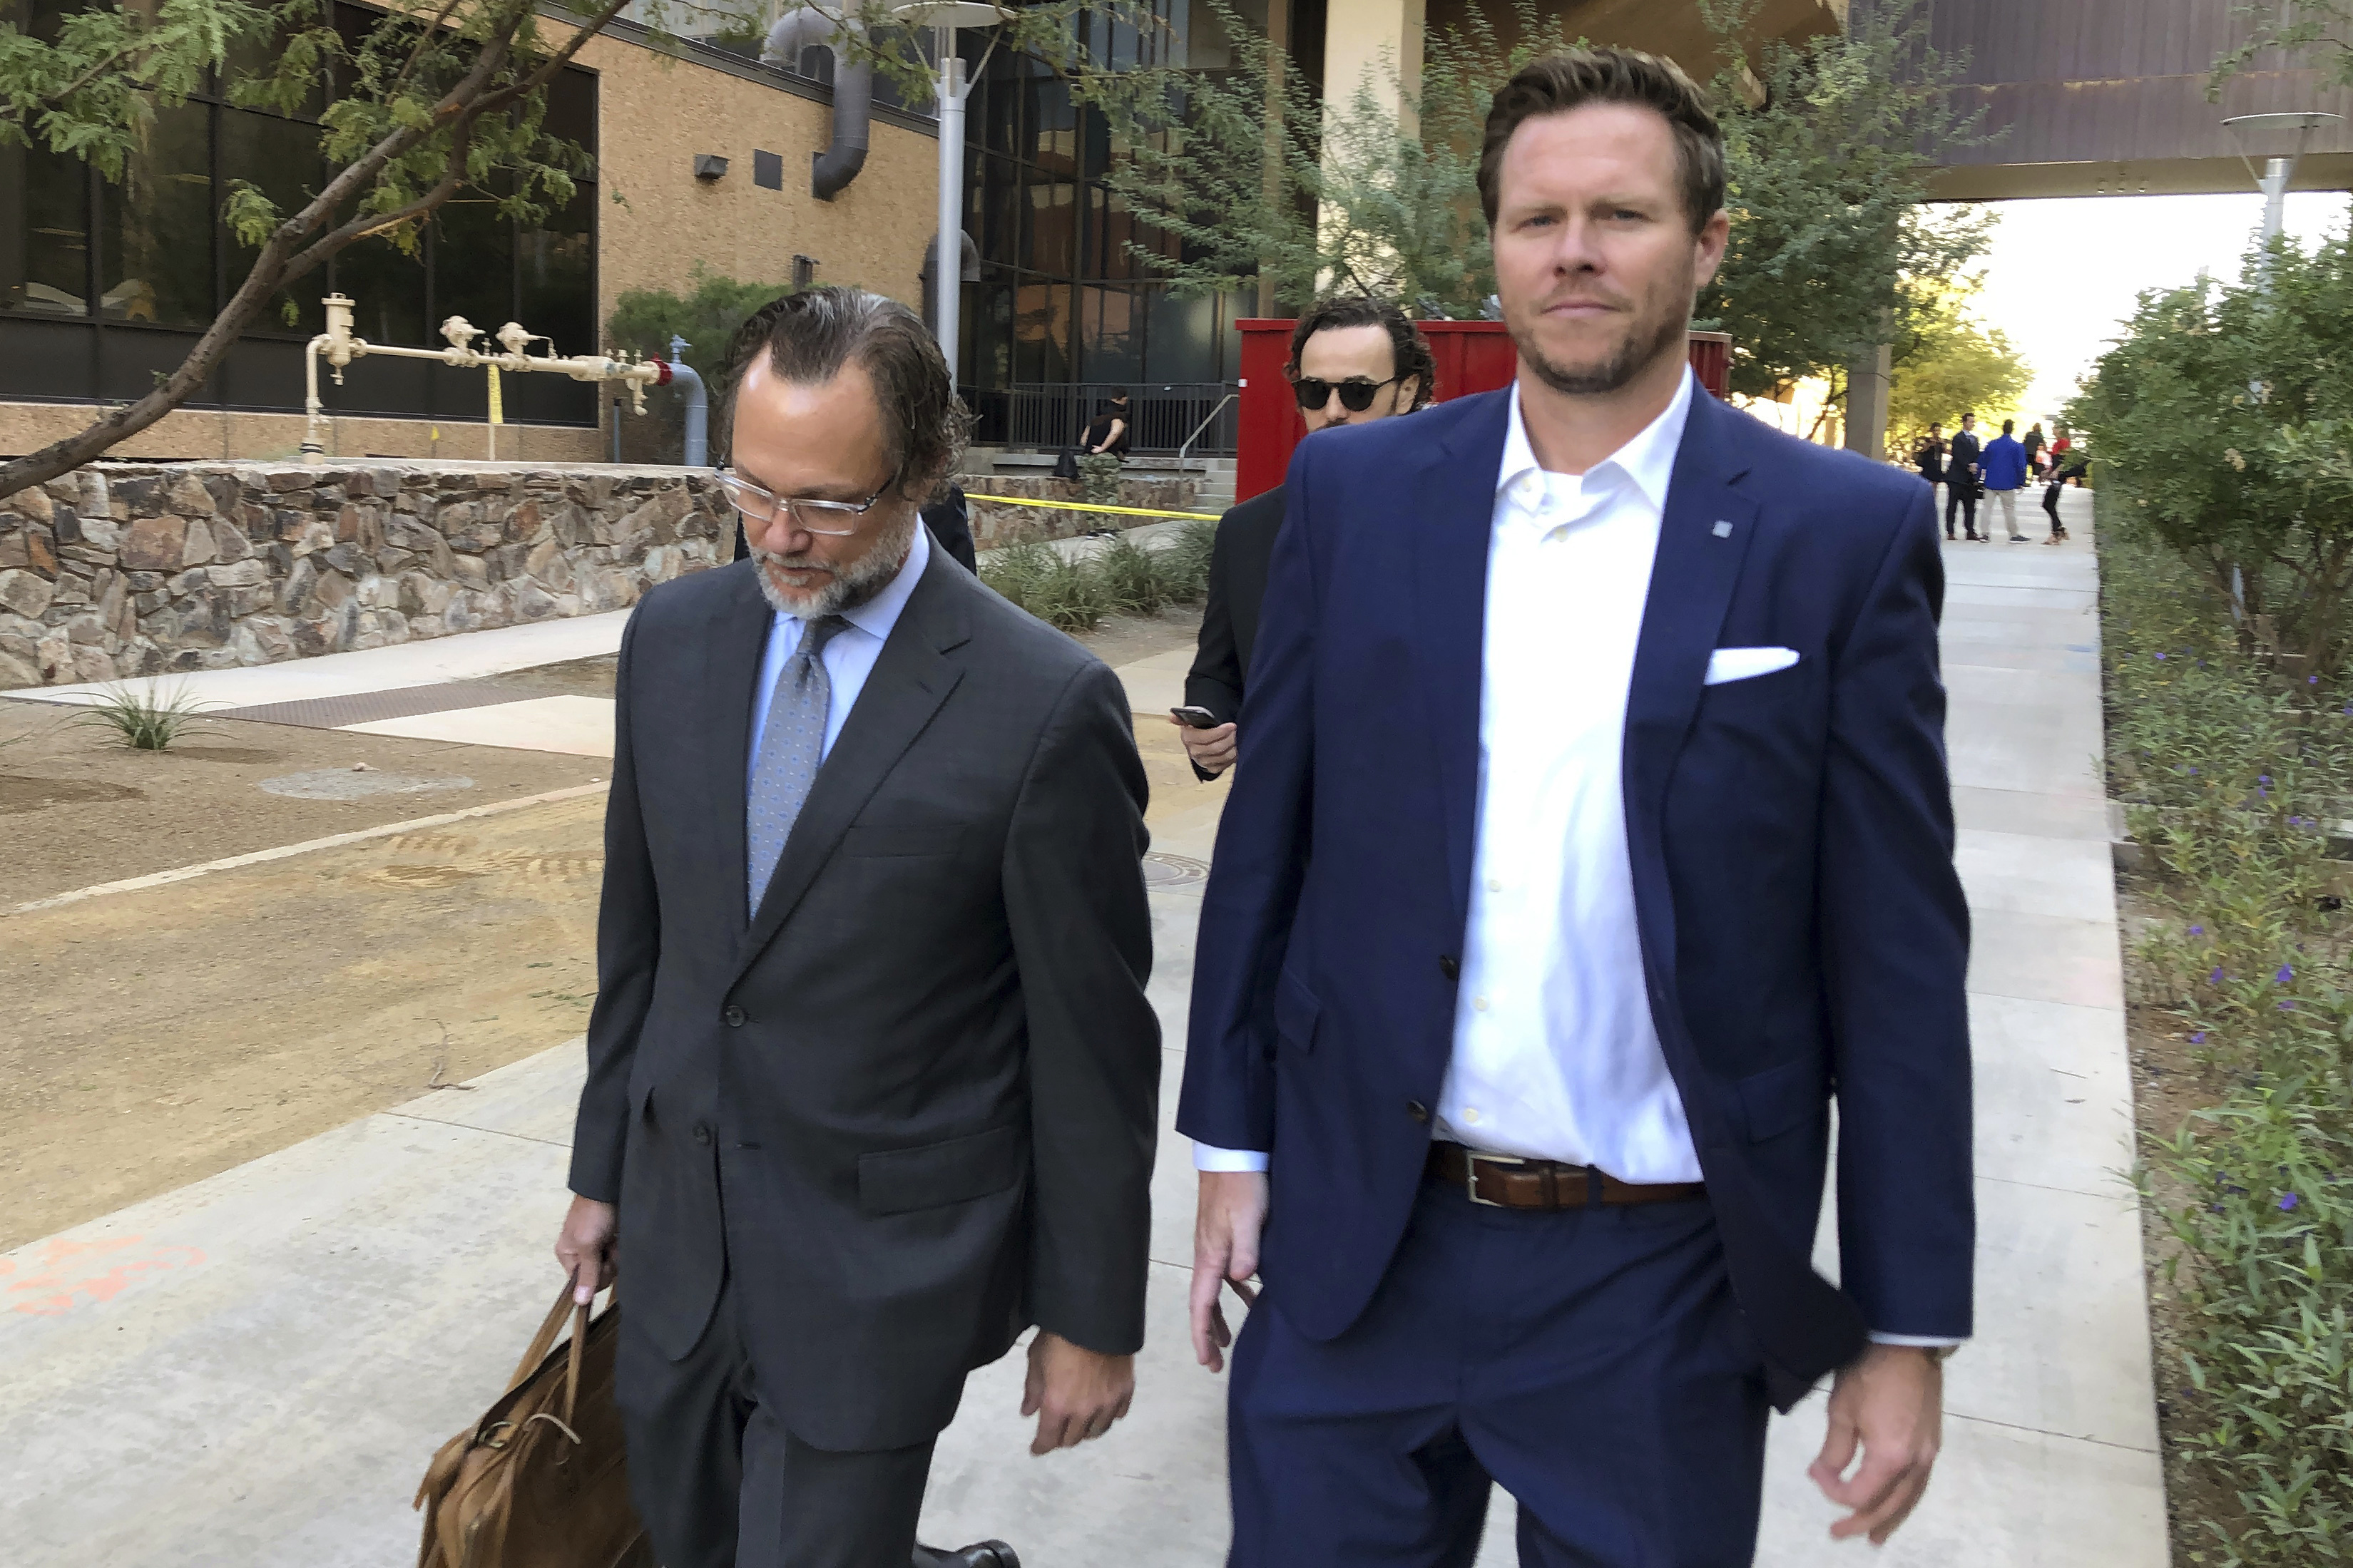 Arizona official charged in adoption scheme gets Dec. 11 hearing to contest suspension